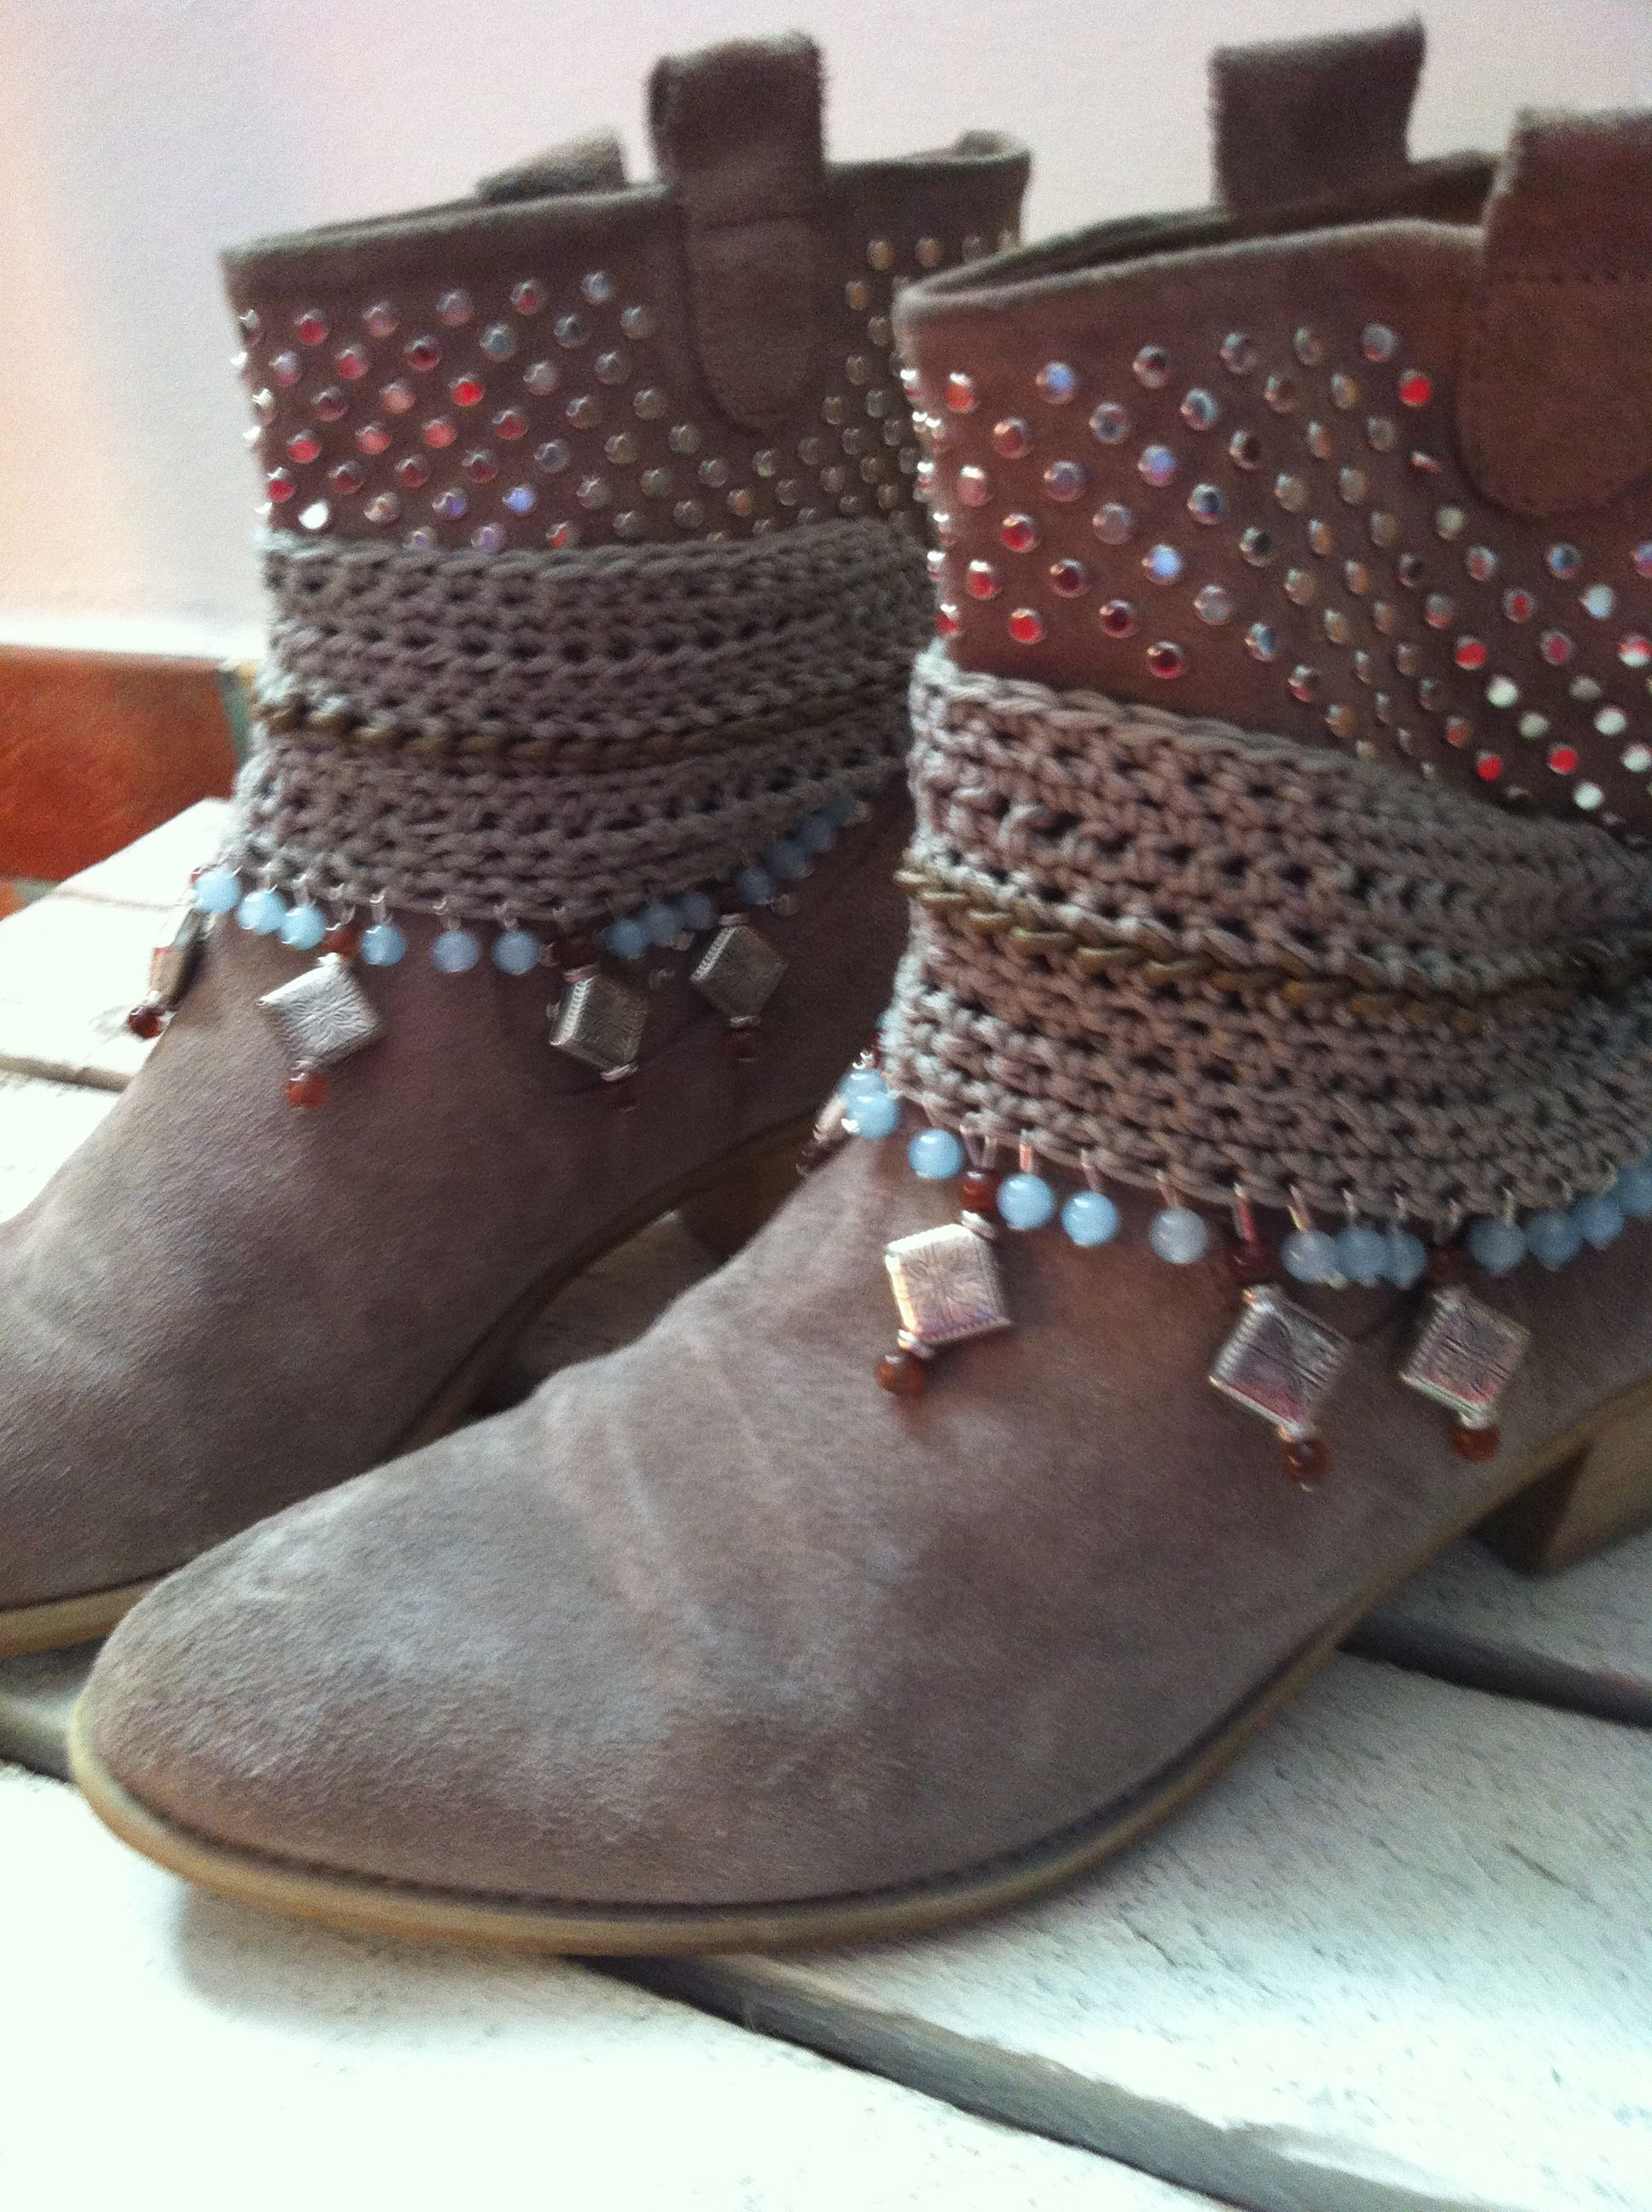 Cubre botas crochet/Crocheted boot covers | Crochet and Knitting # 2 ...